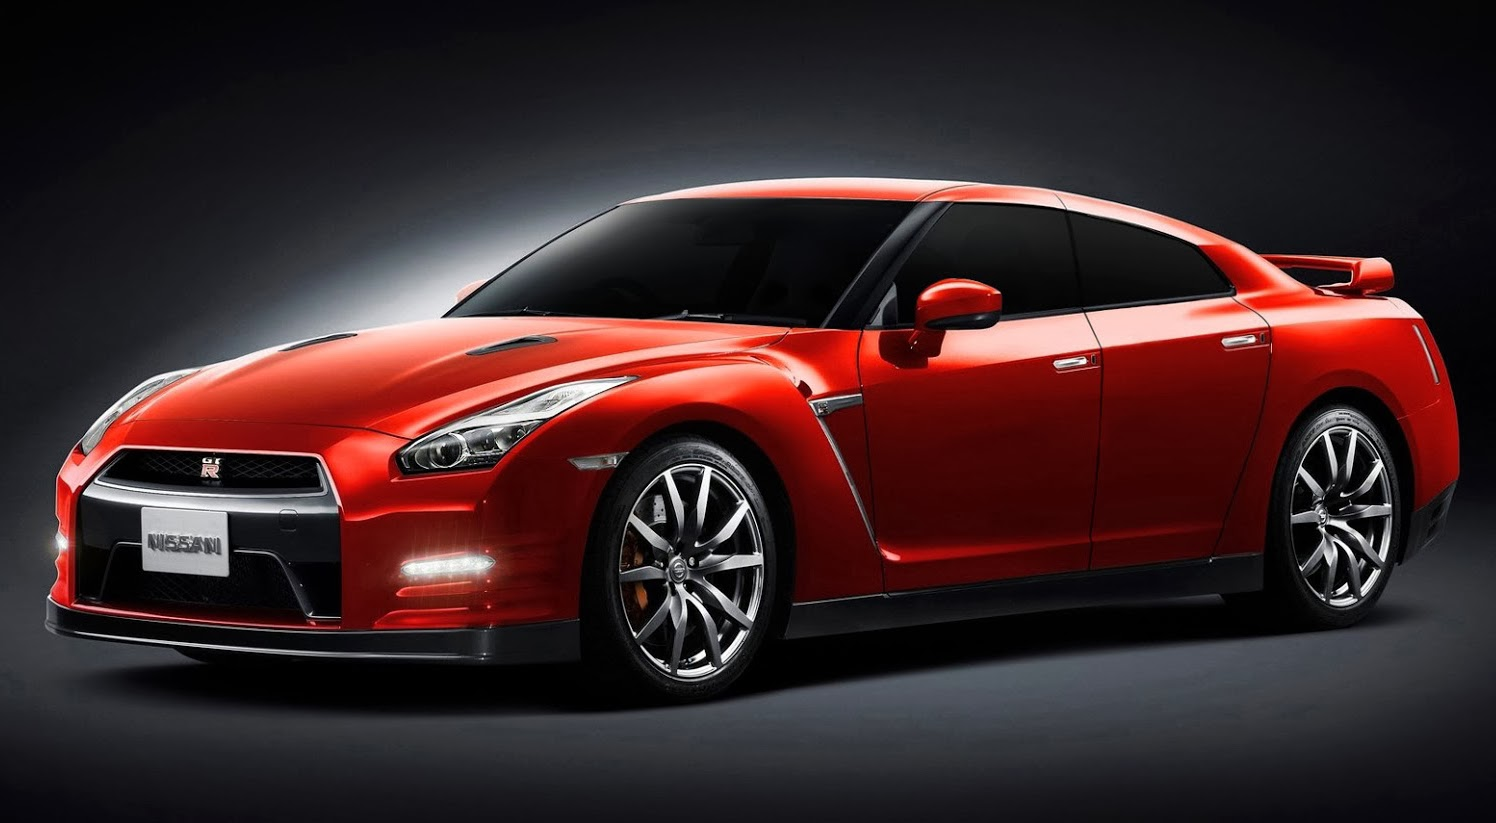 Nissan Gt R R35 550 Ps Laptimes Specs Performance Data